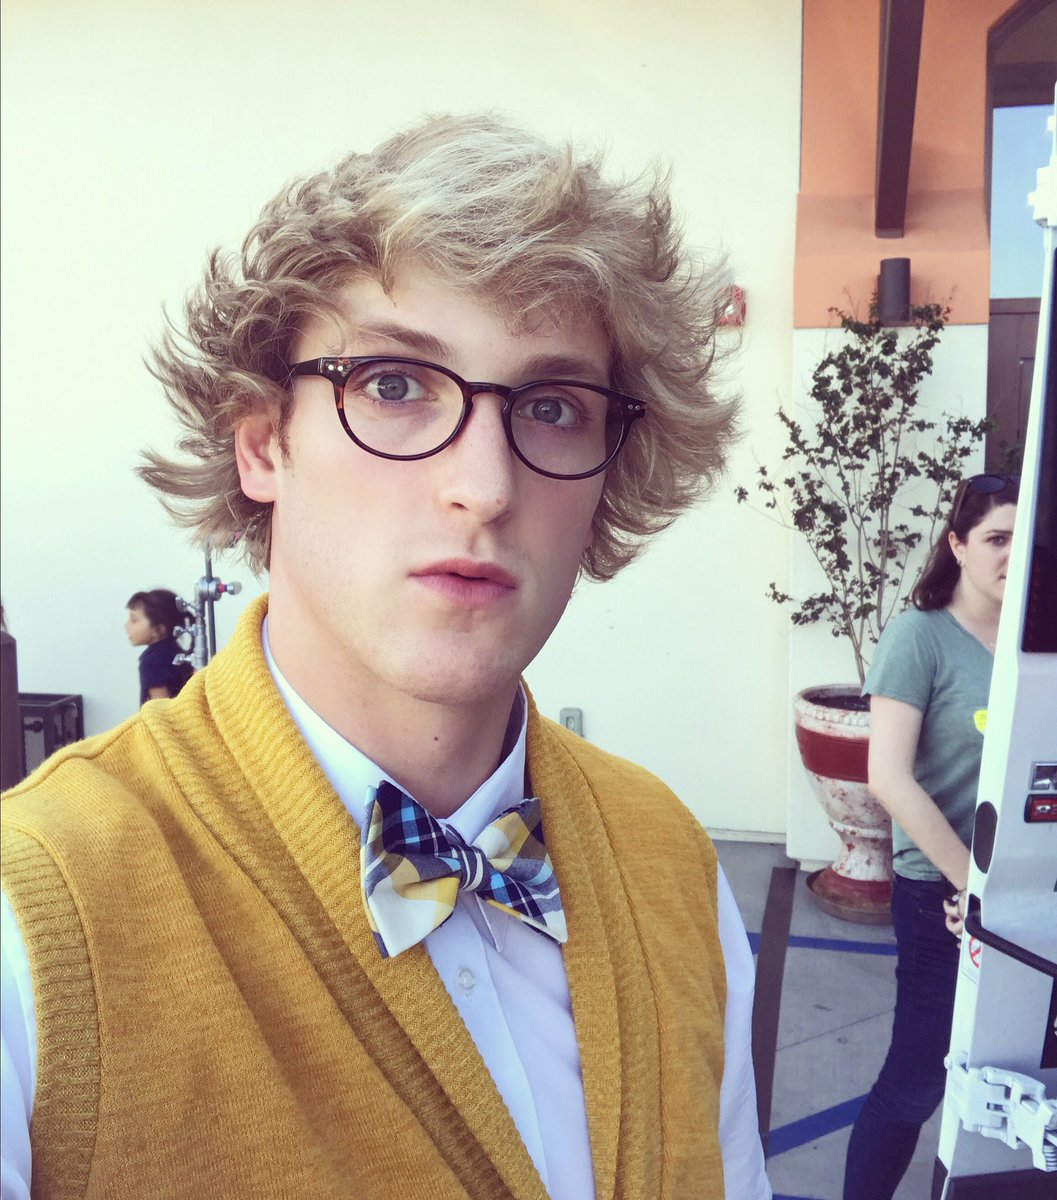 logan paul - photo #41